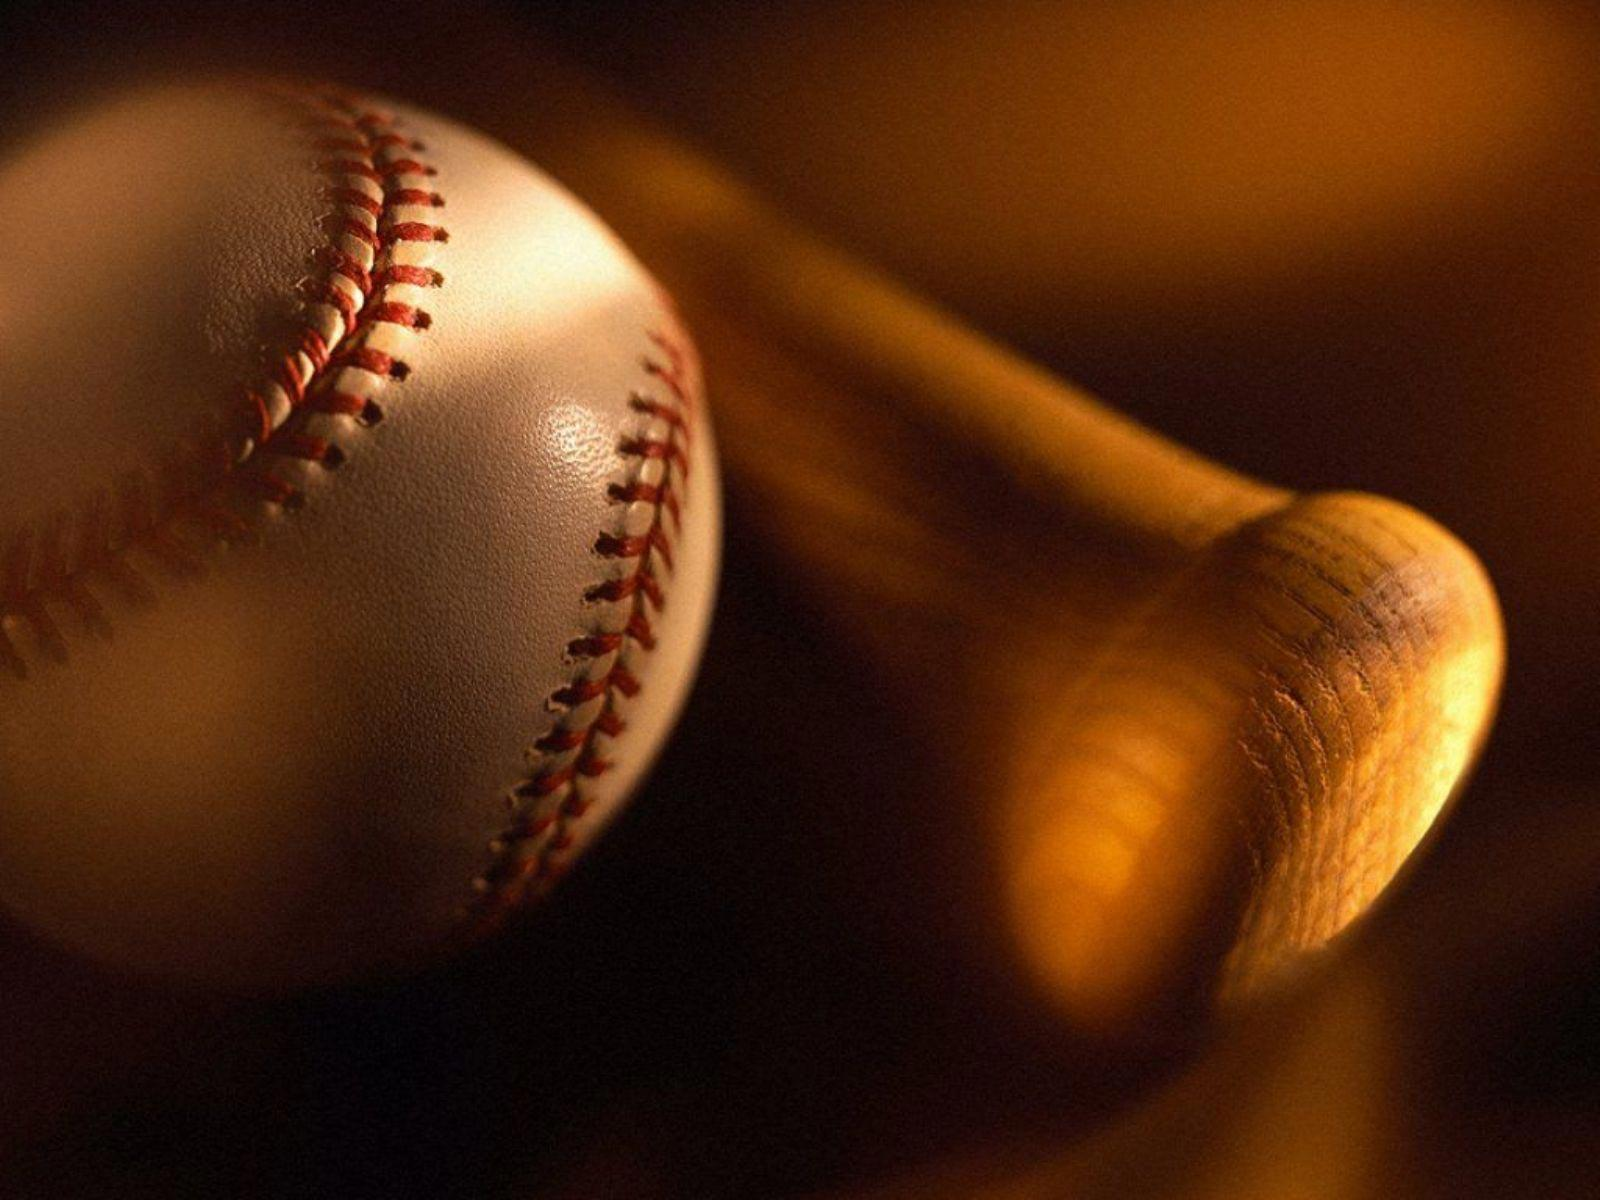 http://2.bp.blogspot.com/-5xbS9AbmpxA/Tz4yH7vUzCI/AAAAAAAABE0/w9lpi8SPBPo/s1600/The-best-top-desktop-baseball-wallpapers-4-baseball-ball-and-bat.jpeg